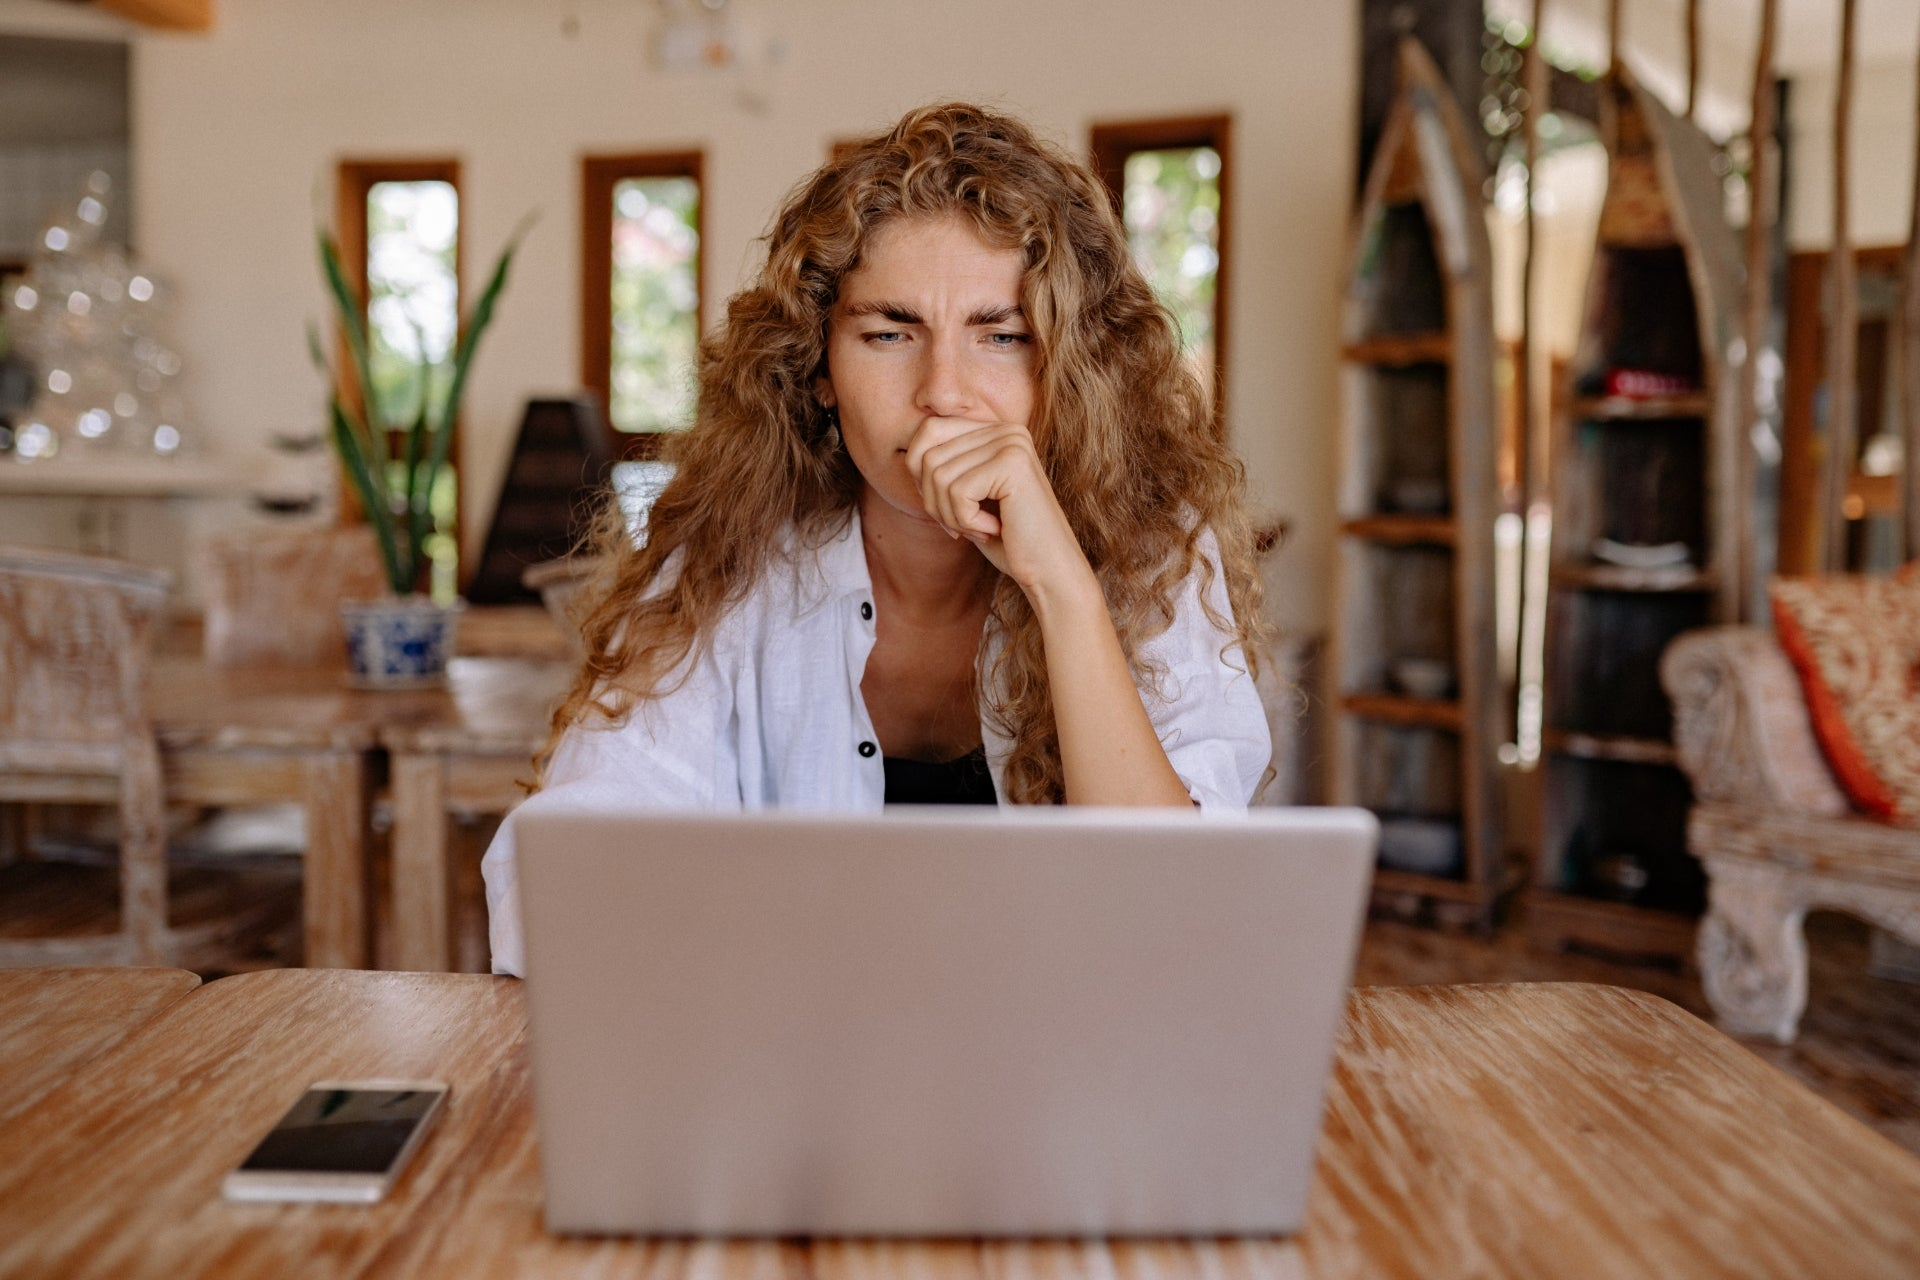 A woman looks at her laptop computer with a thoughtful look on her face.